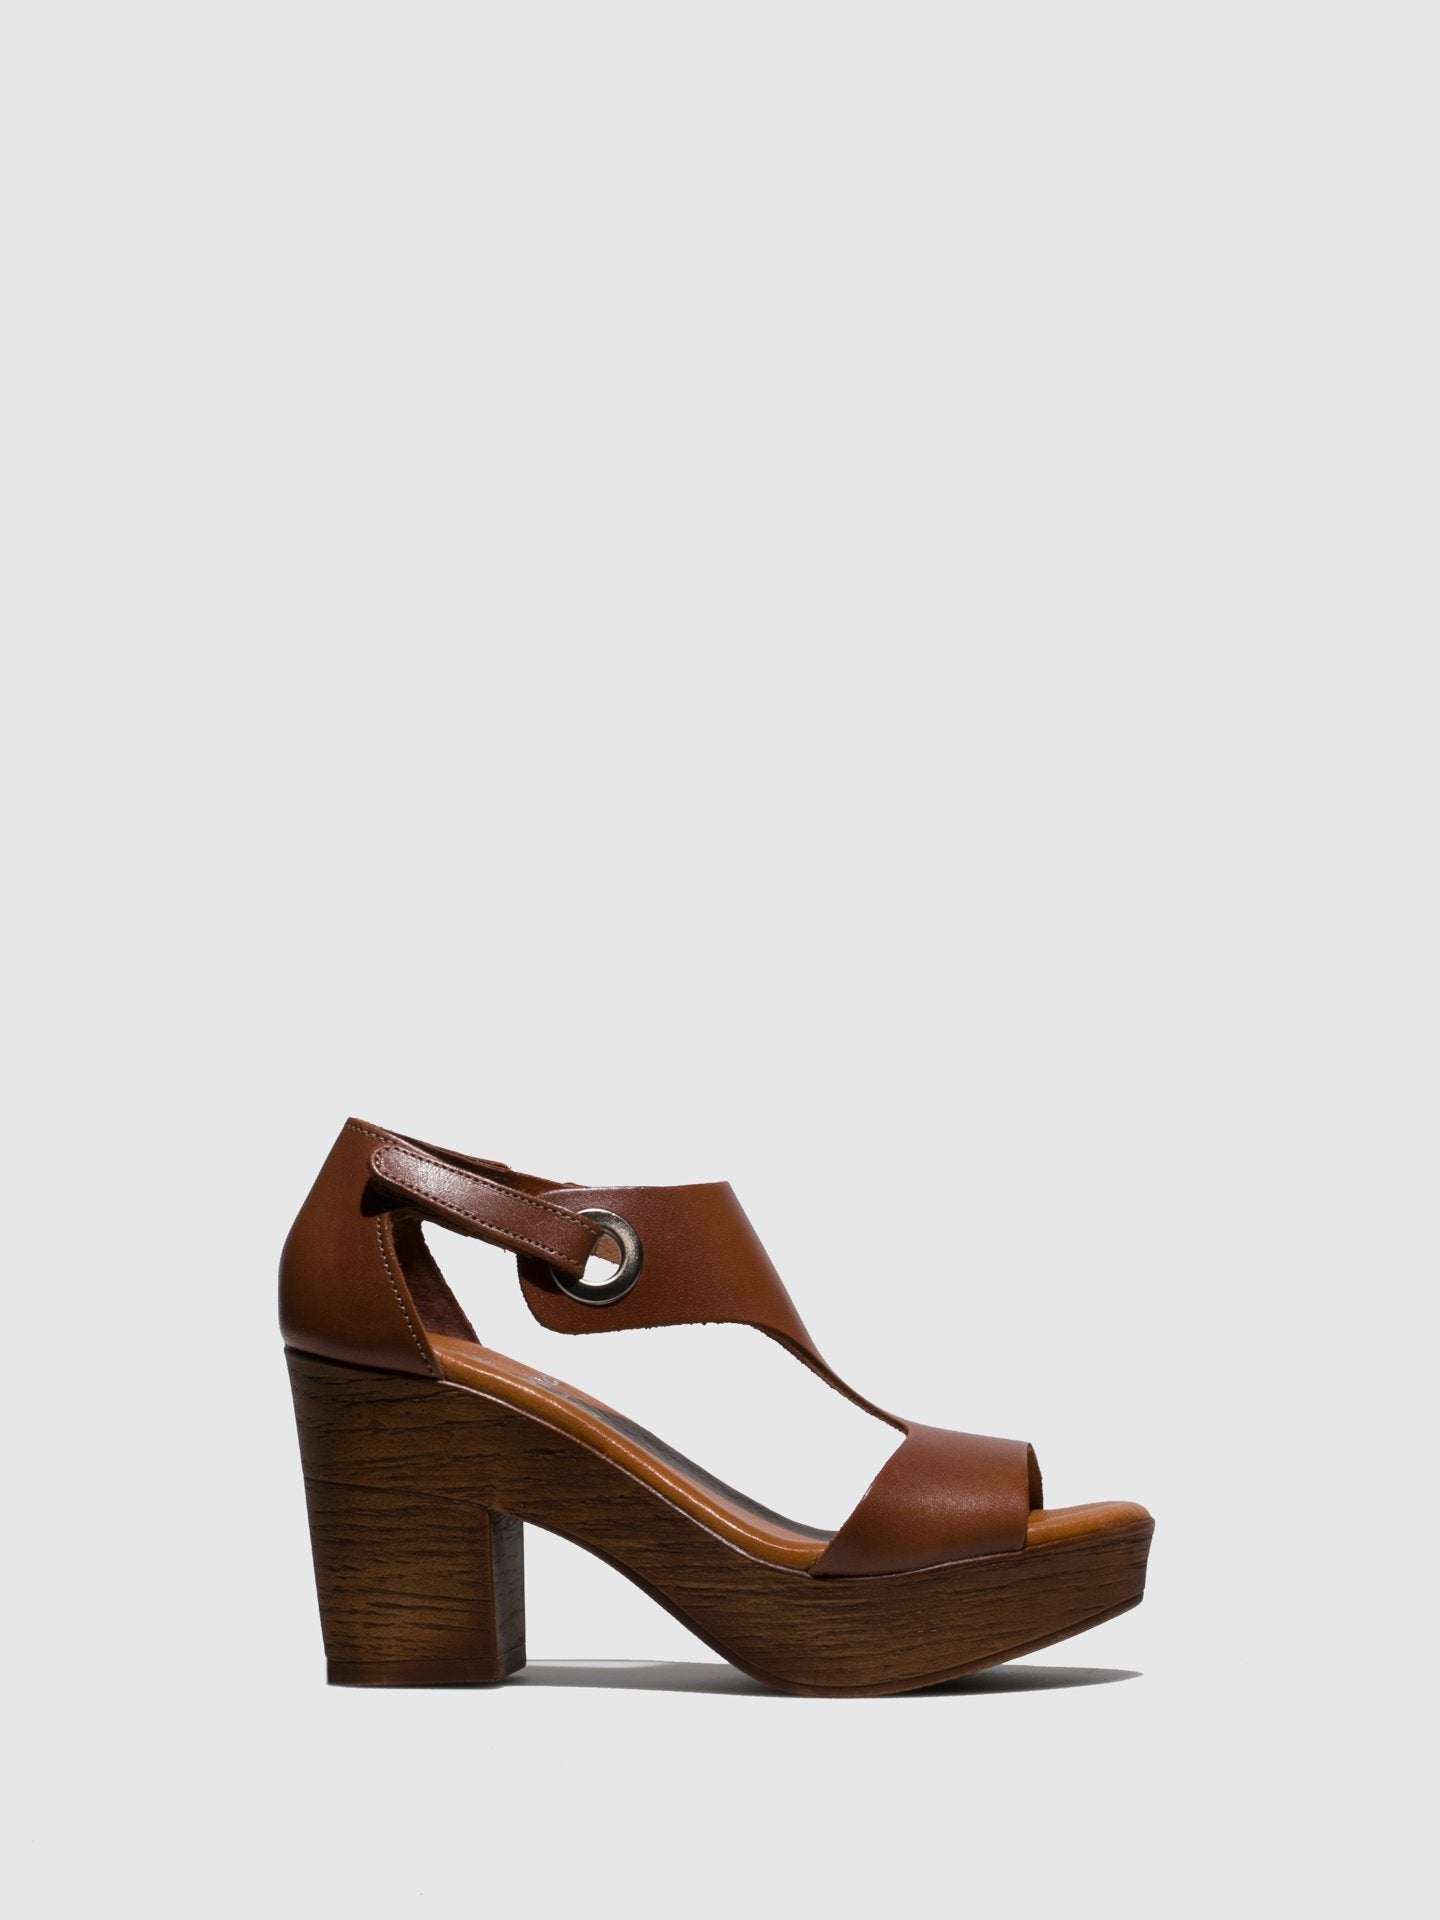 Marila Shoes Brown Leather Sling-Back Sandals